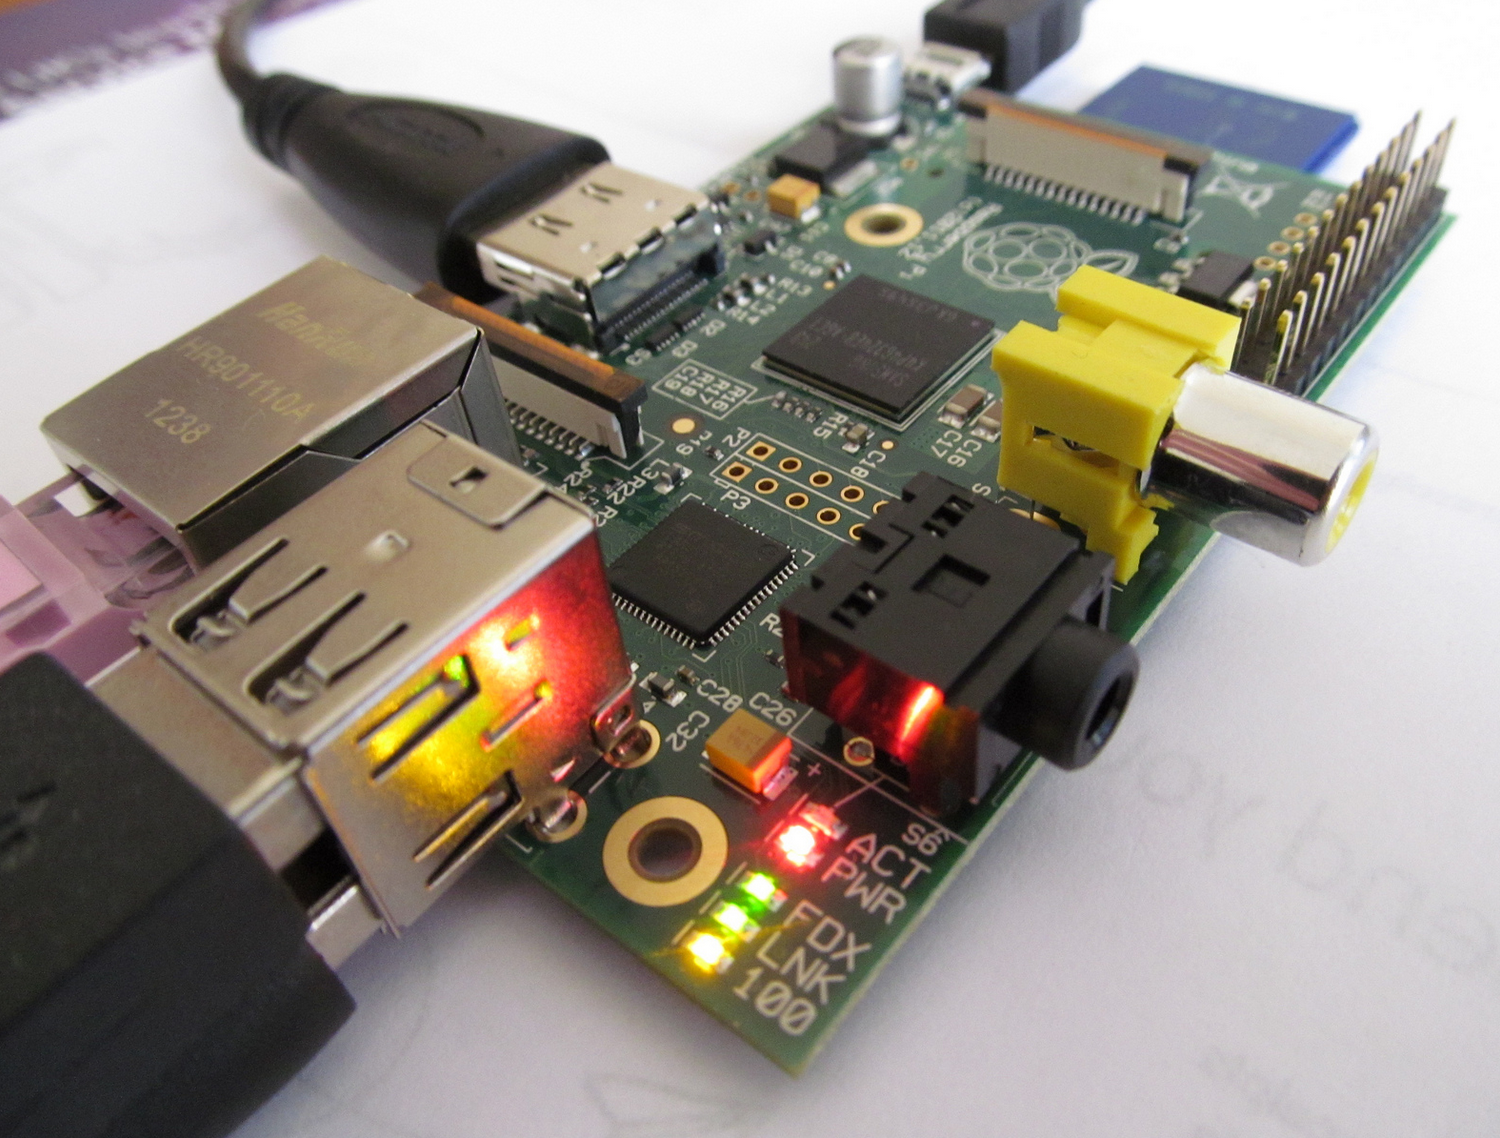 How To Make A Diy Home Alarm System With Raspberry Pi And Webcam Usb Wire Diagram